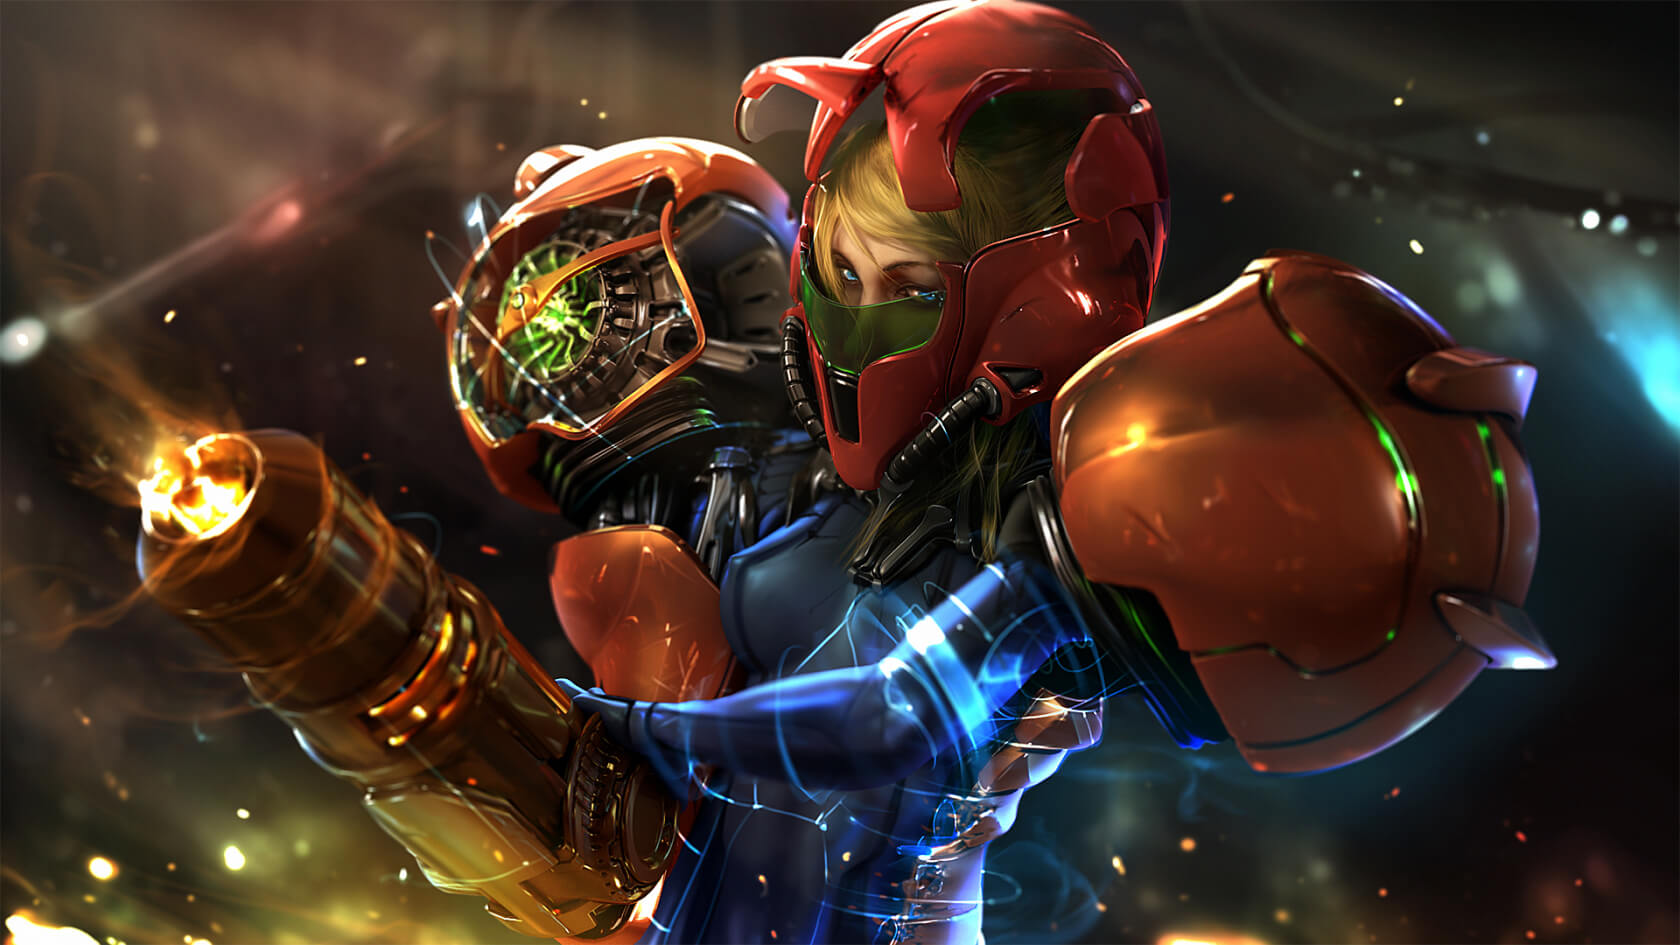 Nintendo Switch's Metroid Prime 4 Being Developed By Bandai Namco